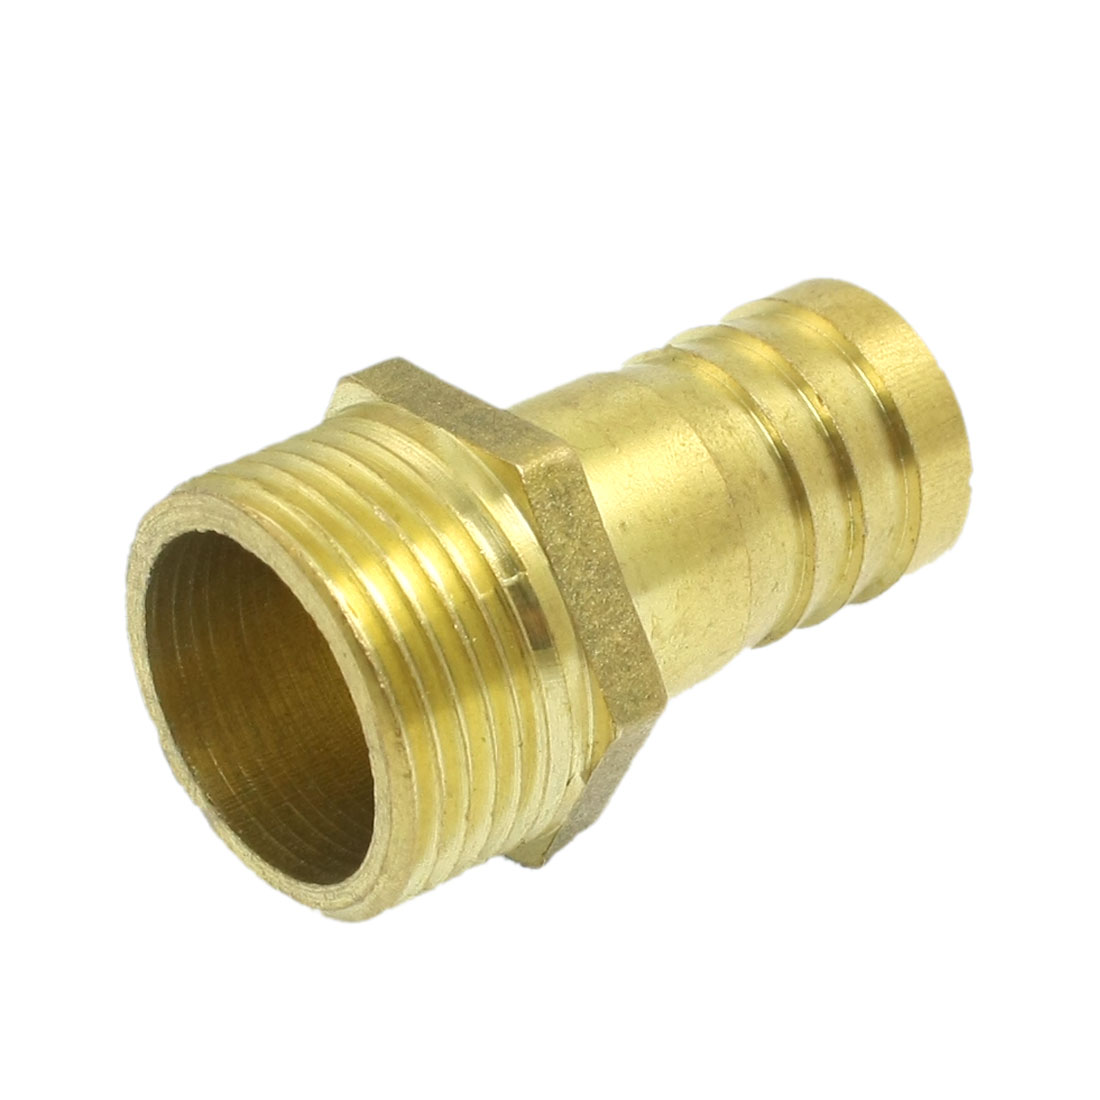 "Brass 3/4"" Male Thread Straight Connector Coupler for Water Air Hose"